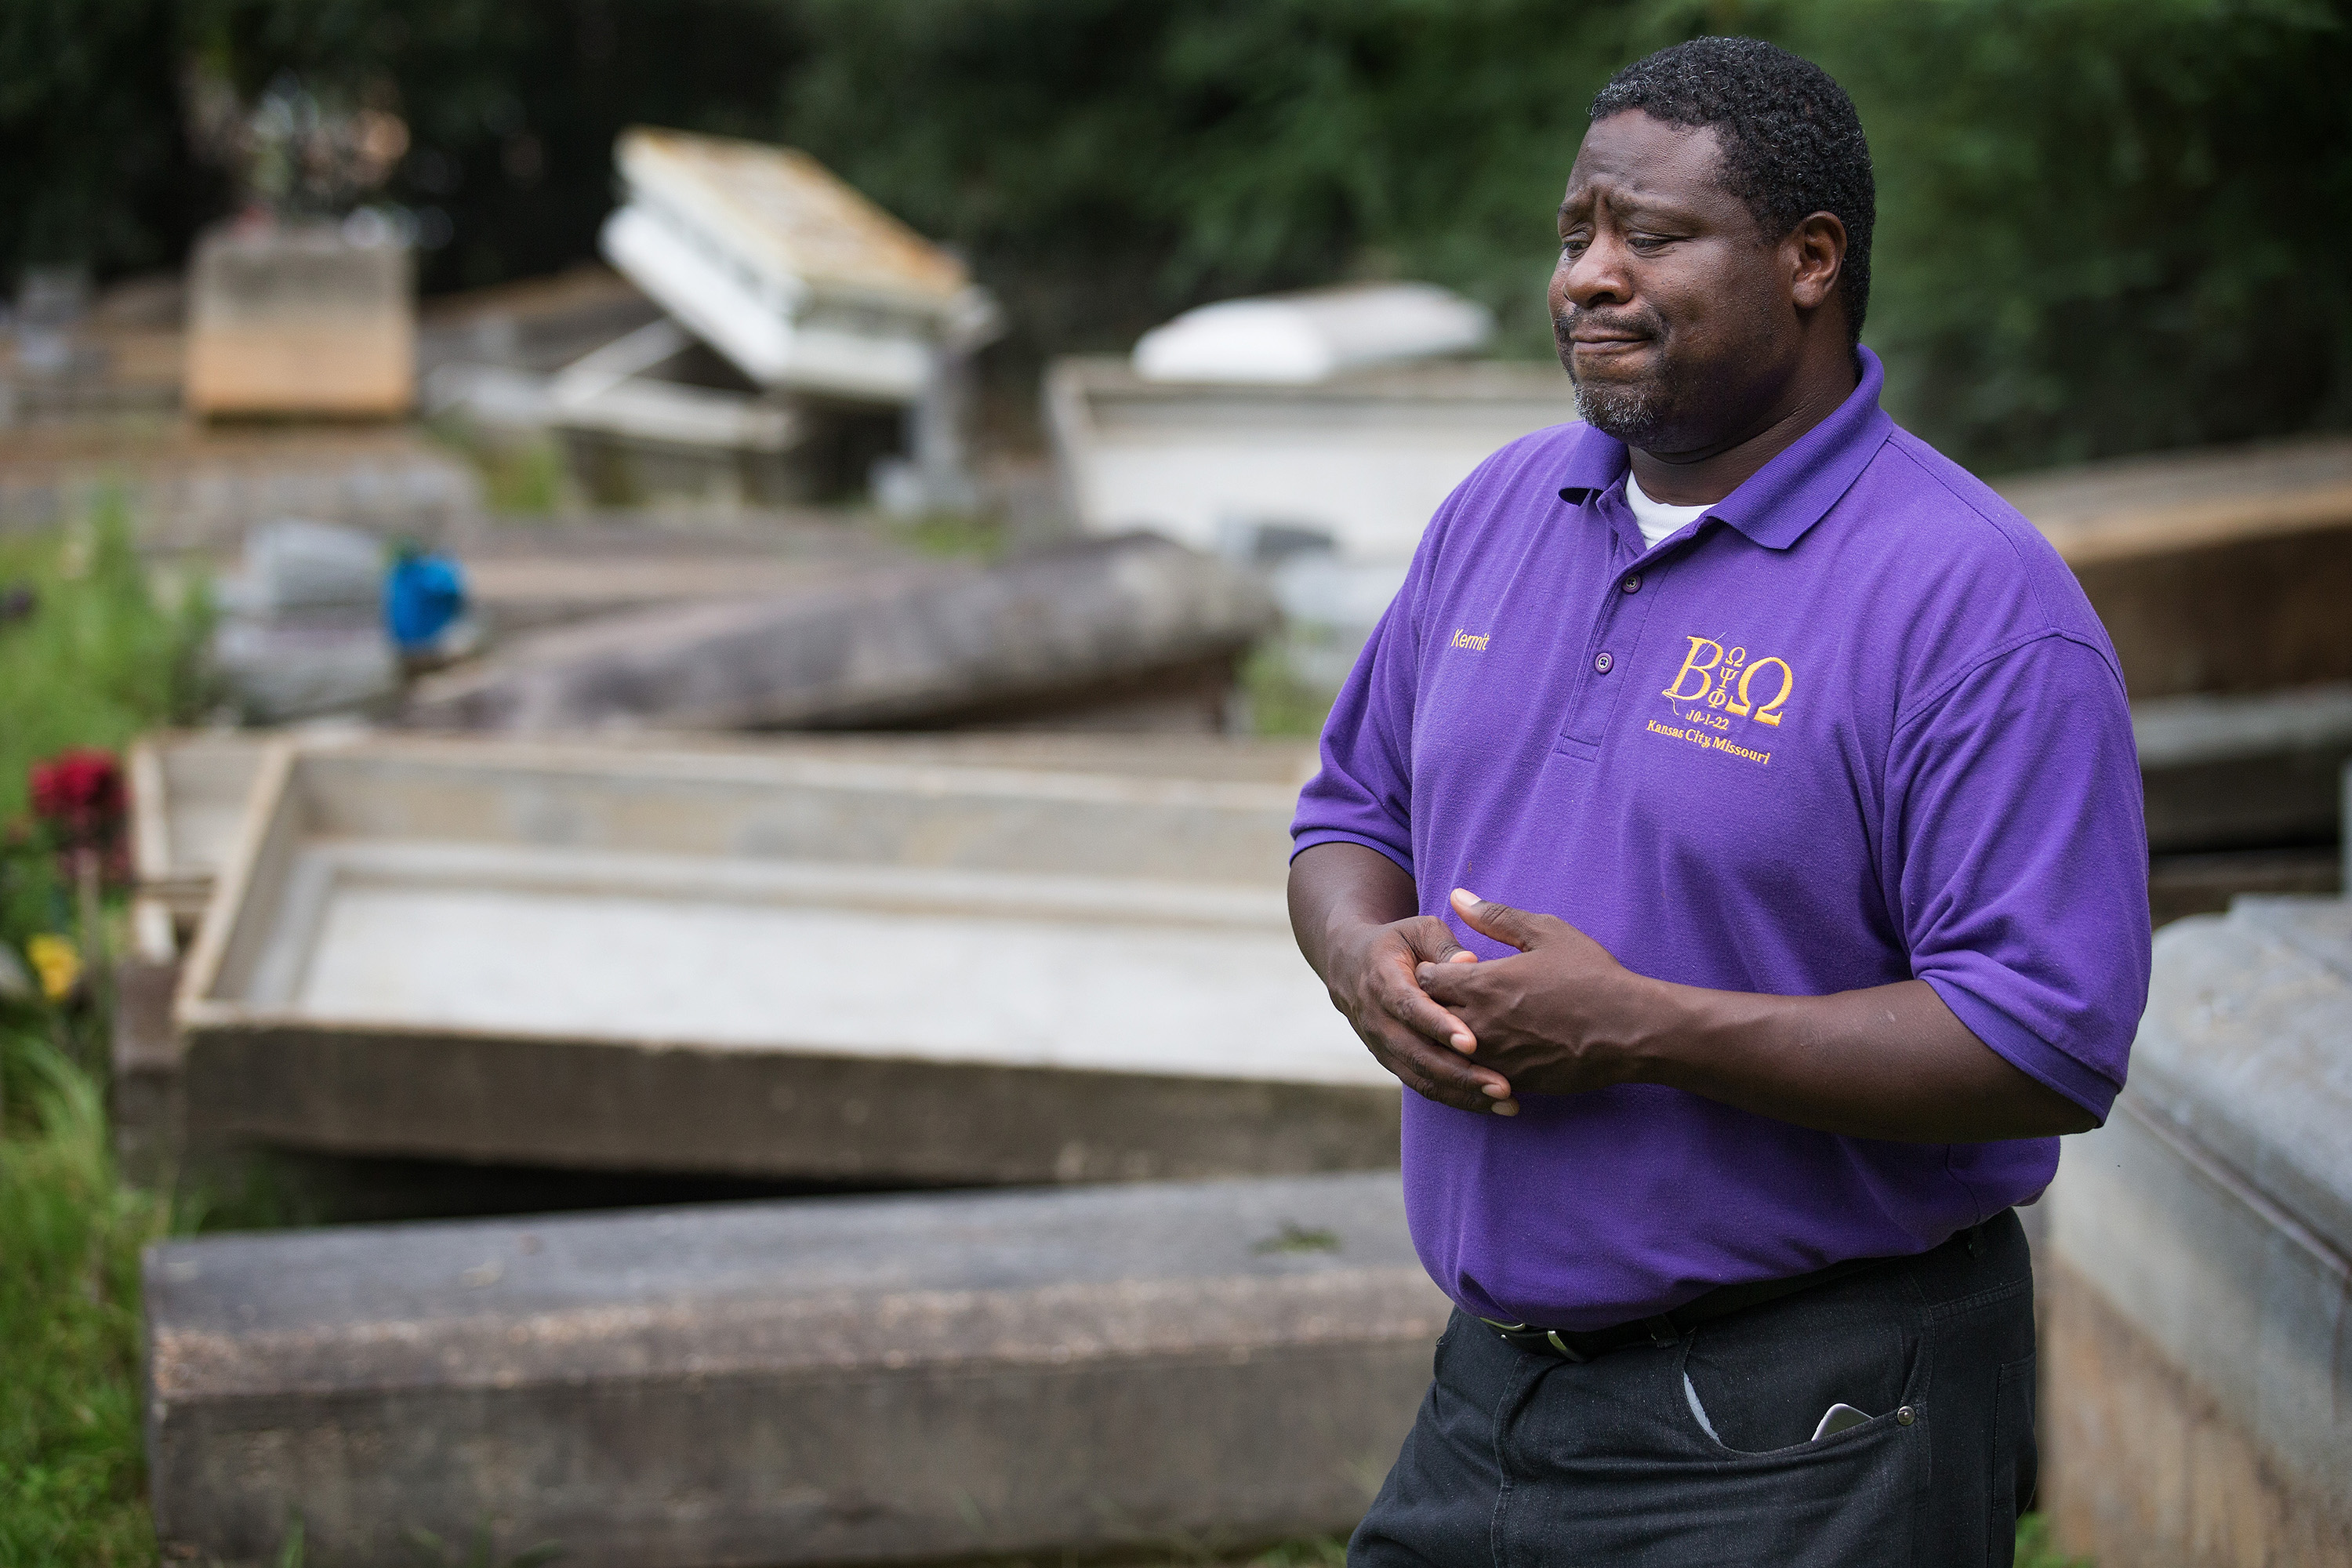 The Rev. Kermit Roberson surveys flood damage at Roberts United Methodist Church's Plainview Cemetery in Denham Springs, La., where floodwaters lifted many caskets out of their concrete burial vaults. Photo by Mike DuBose, UMNS.